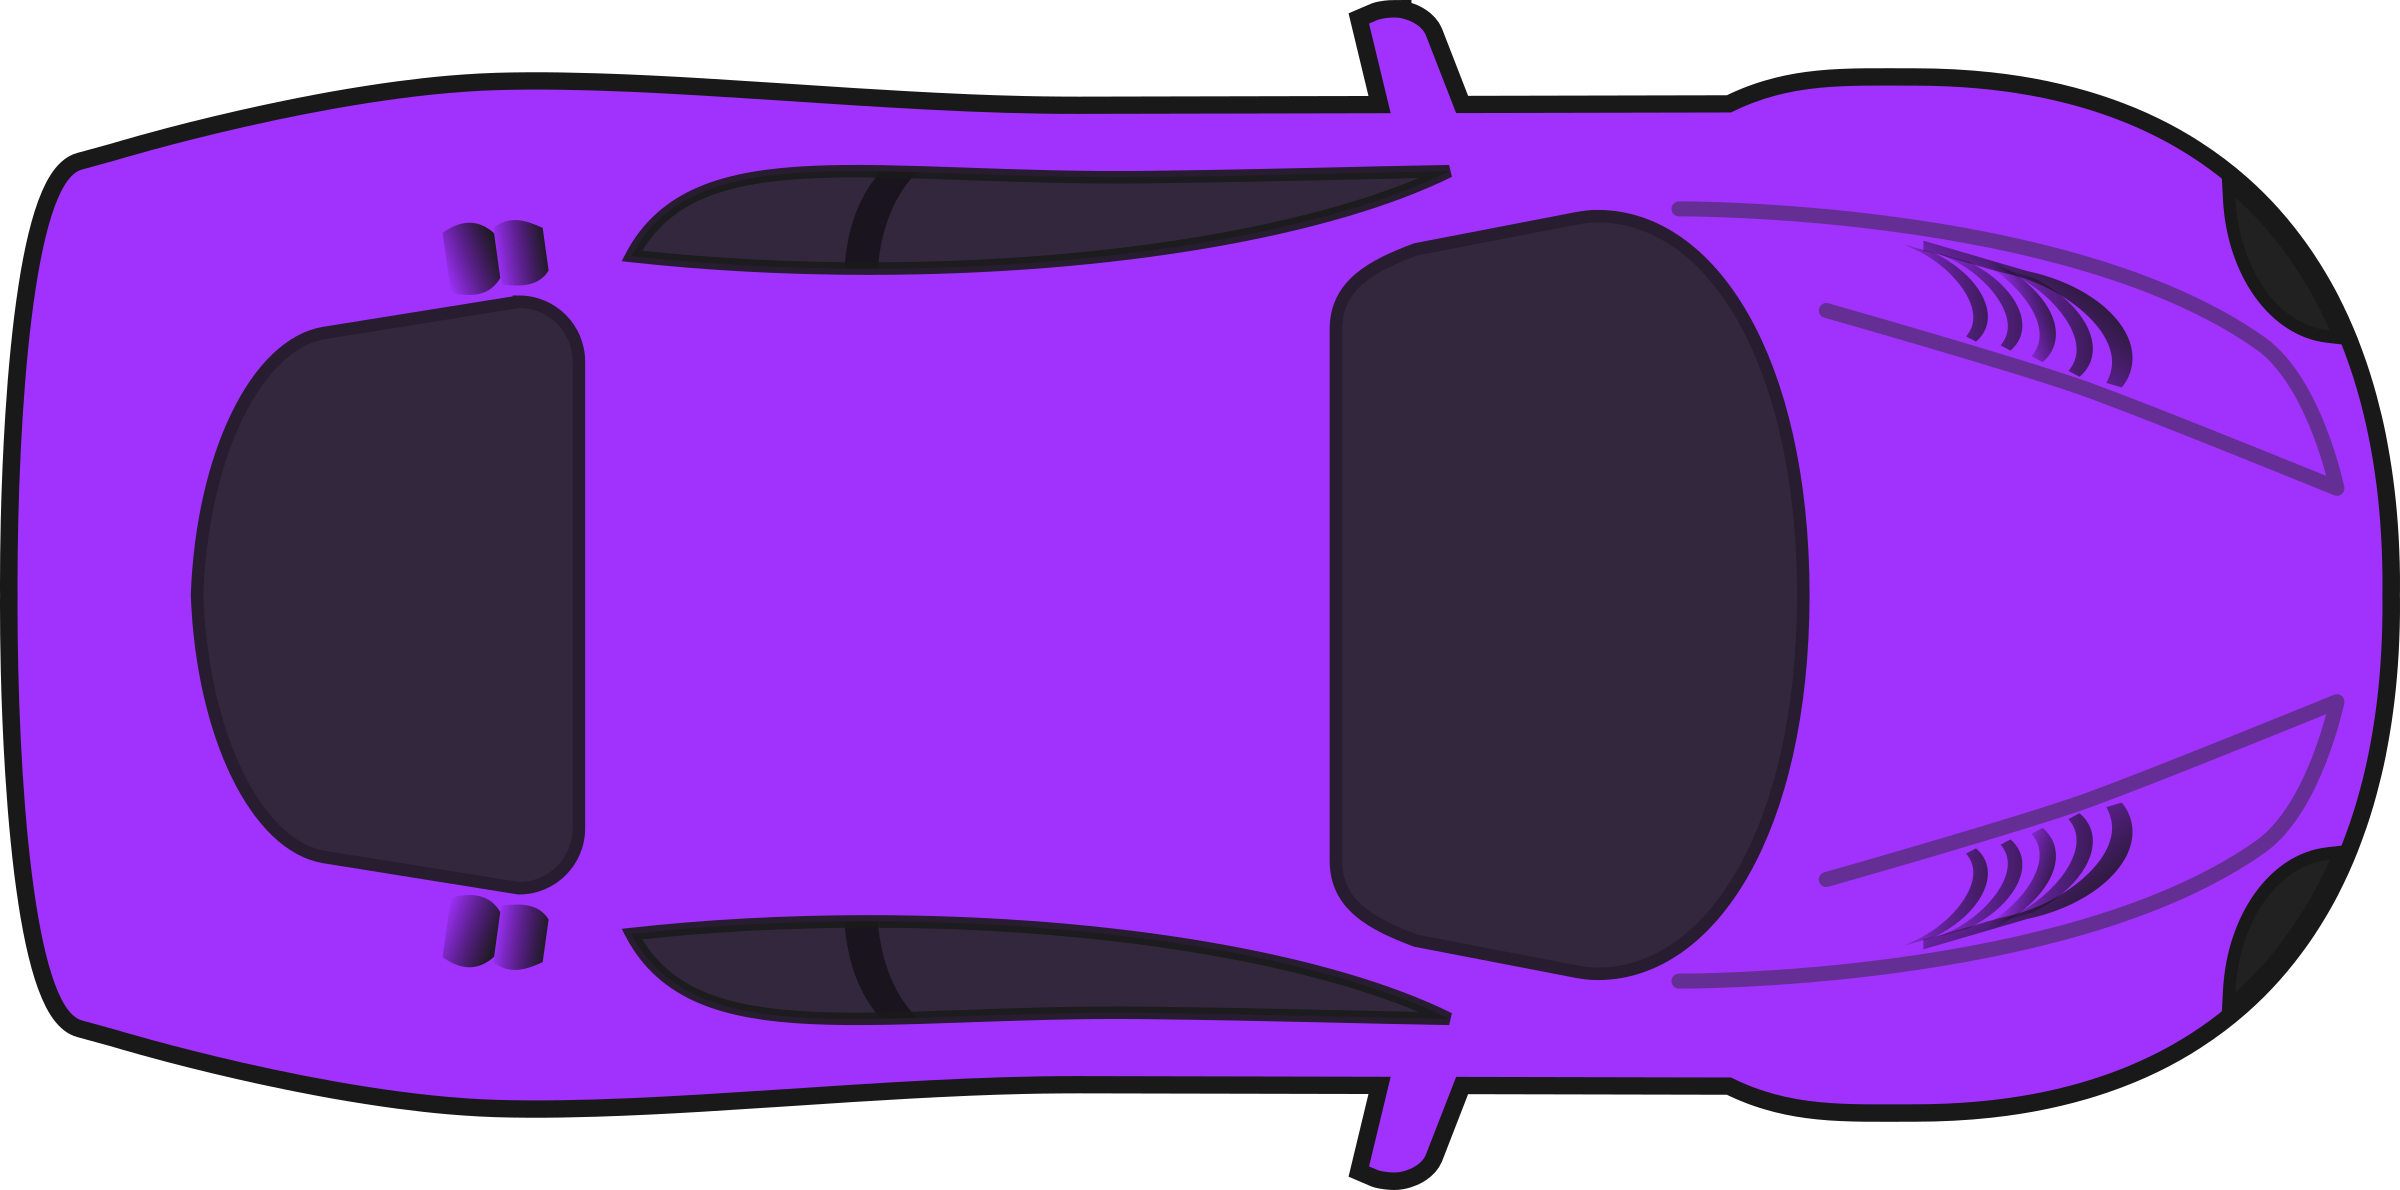 Purple Racing Car (Top View) by qubodup